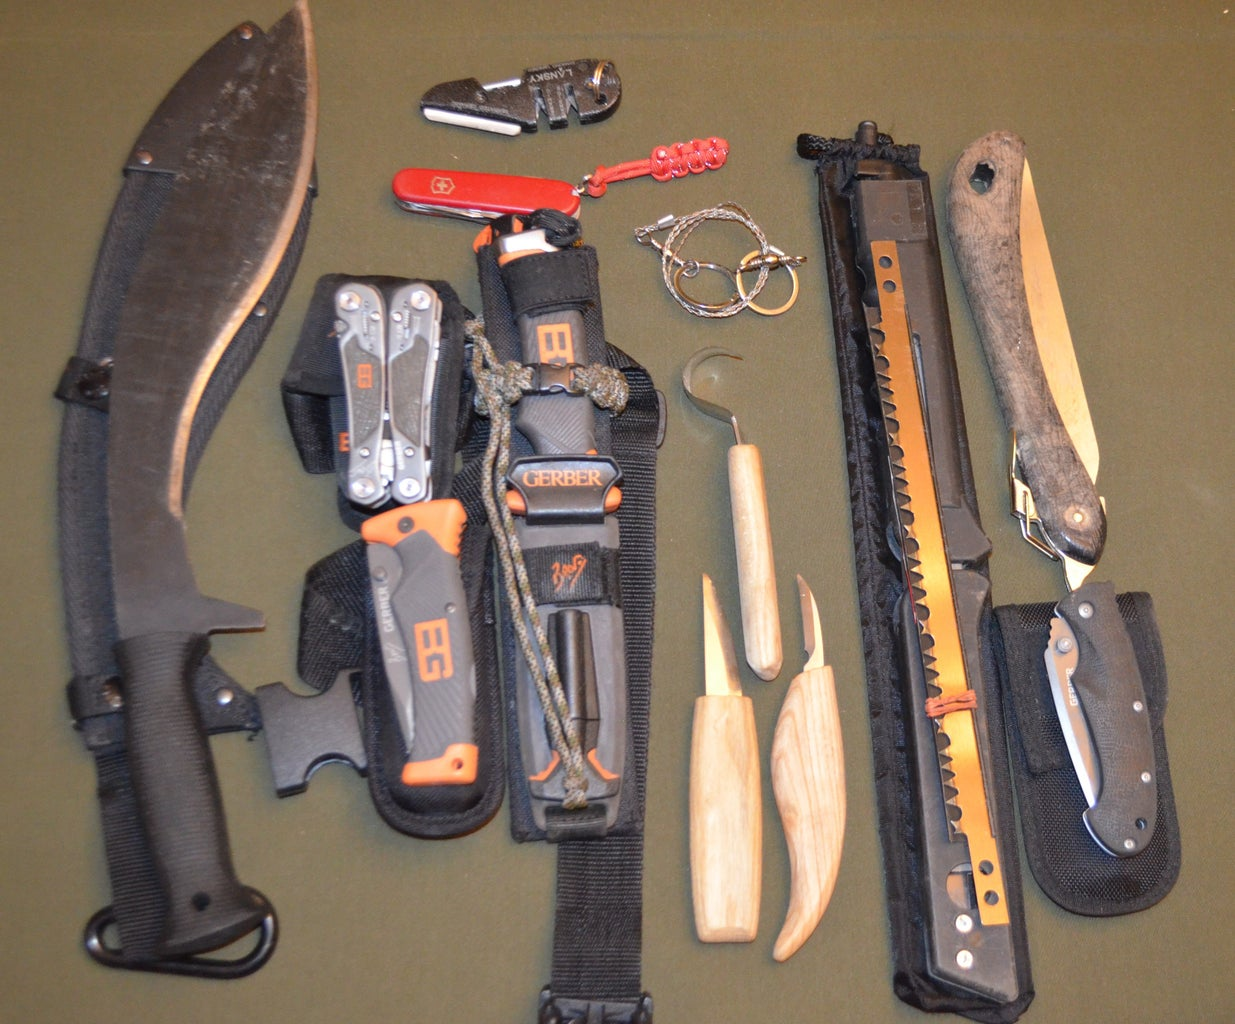 Knives and Cutting (my Favorite)